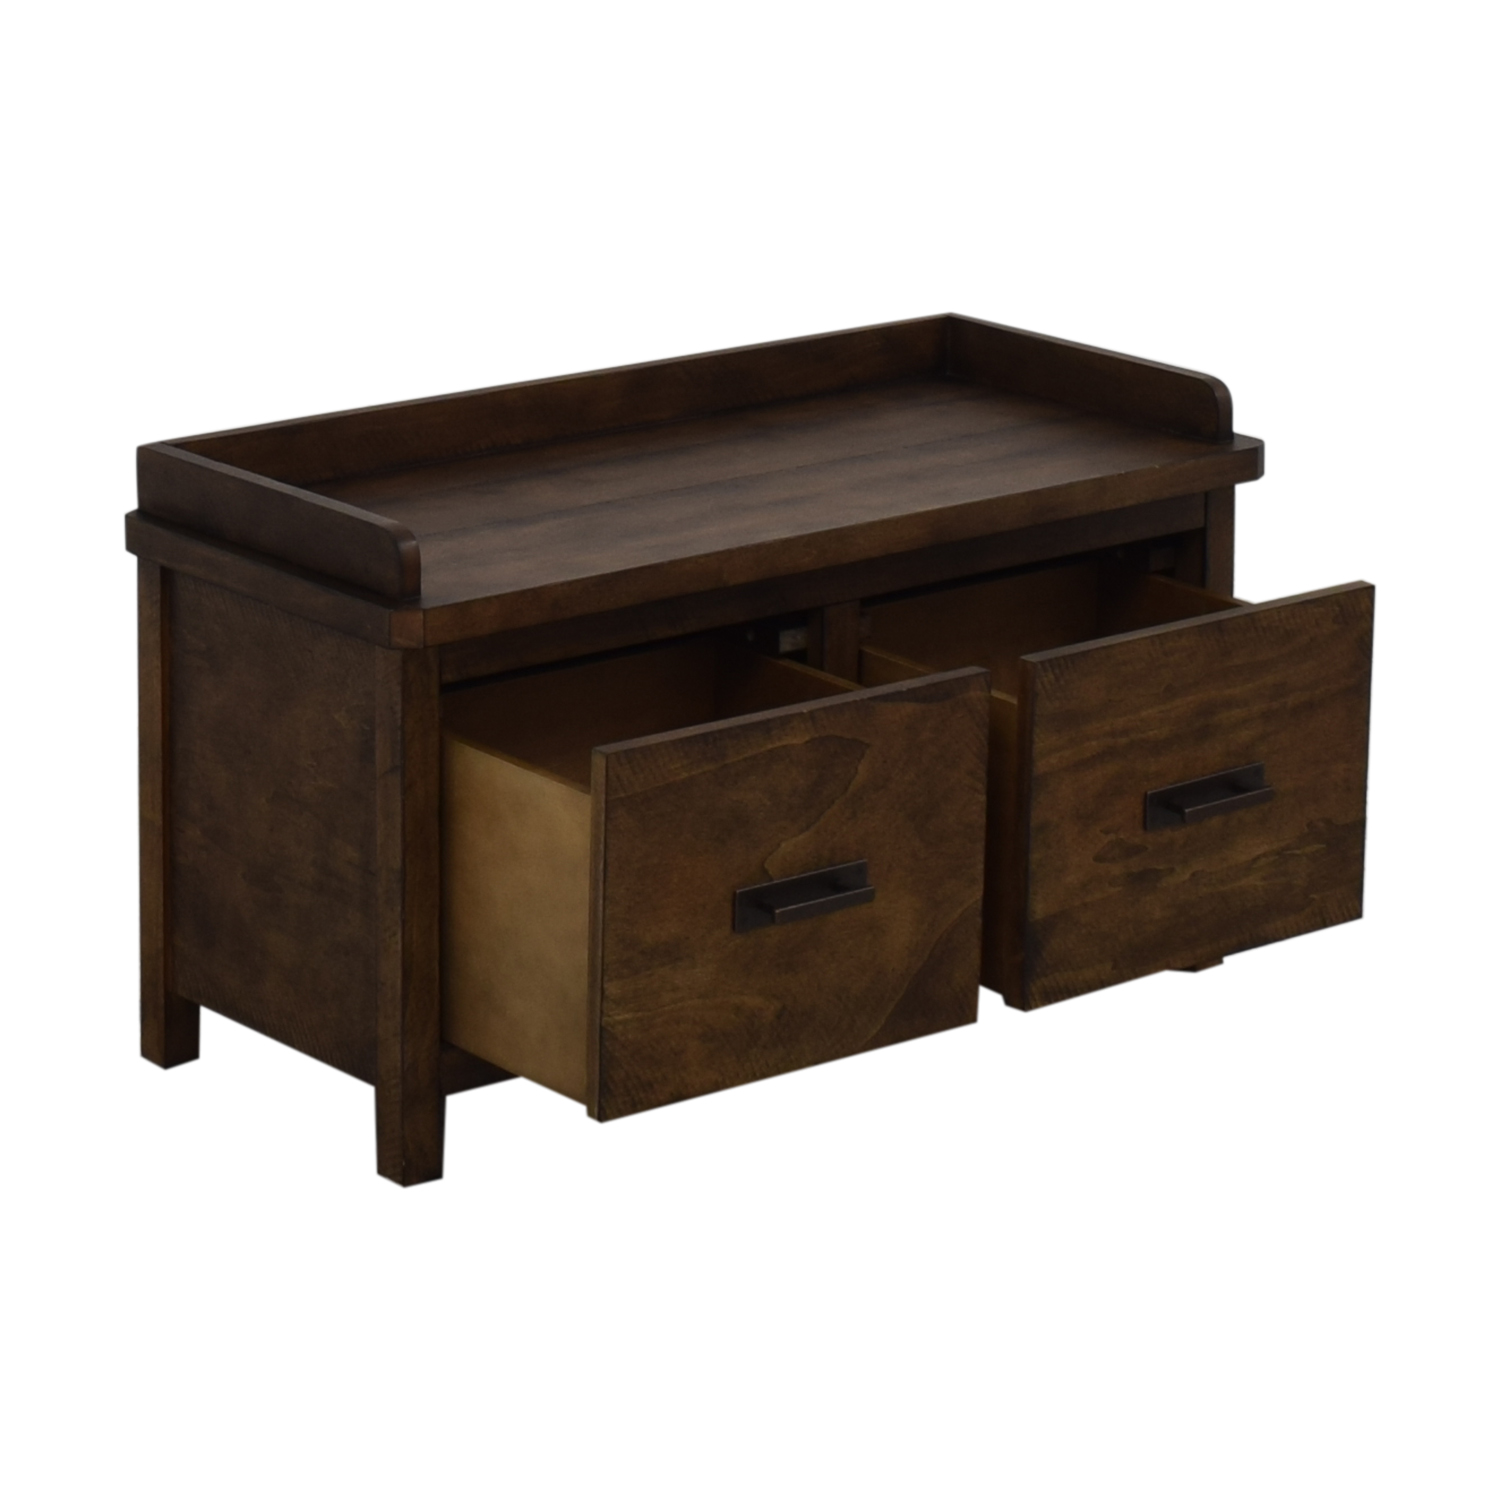 Pottery Barn Pottery Barn Matteo Entryway Storage Bench coupon